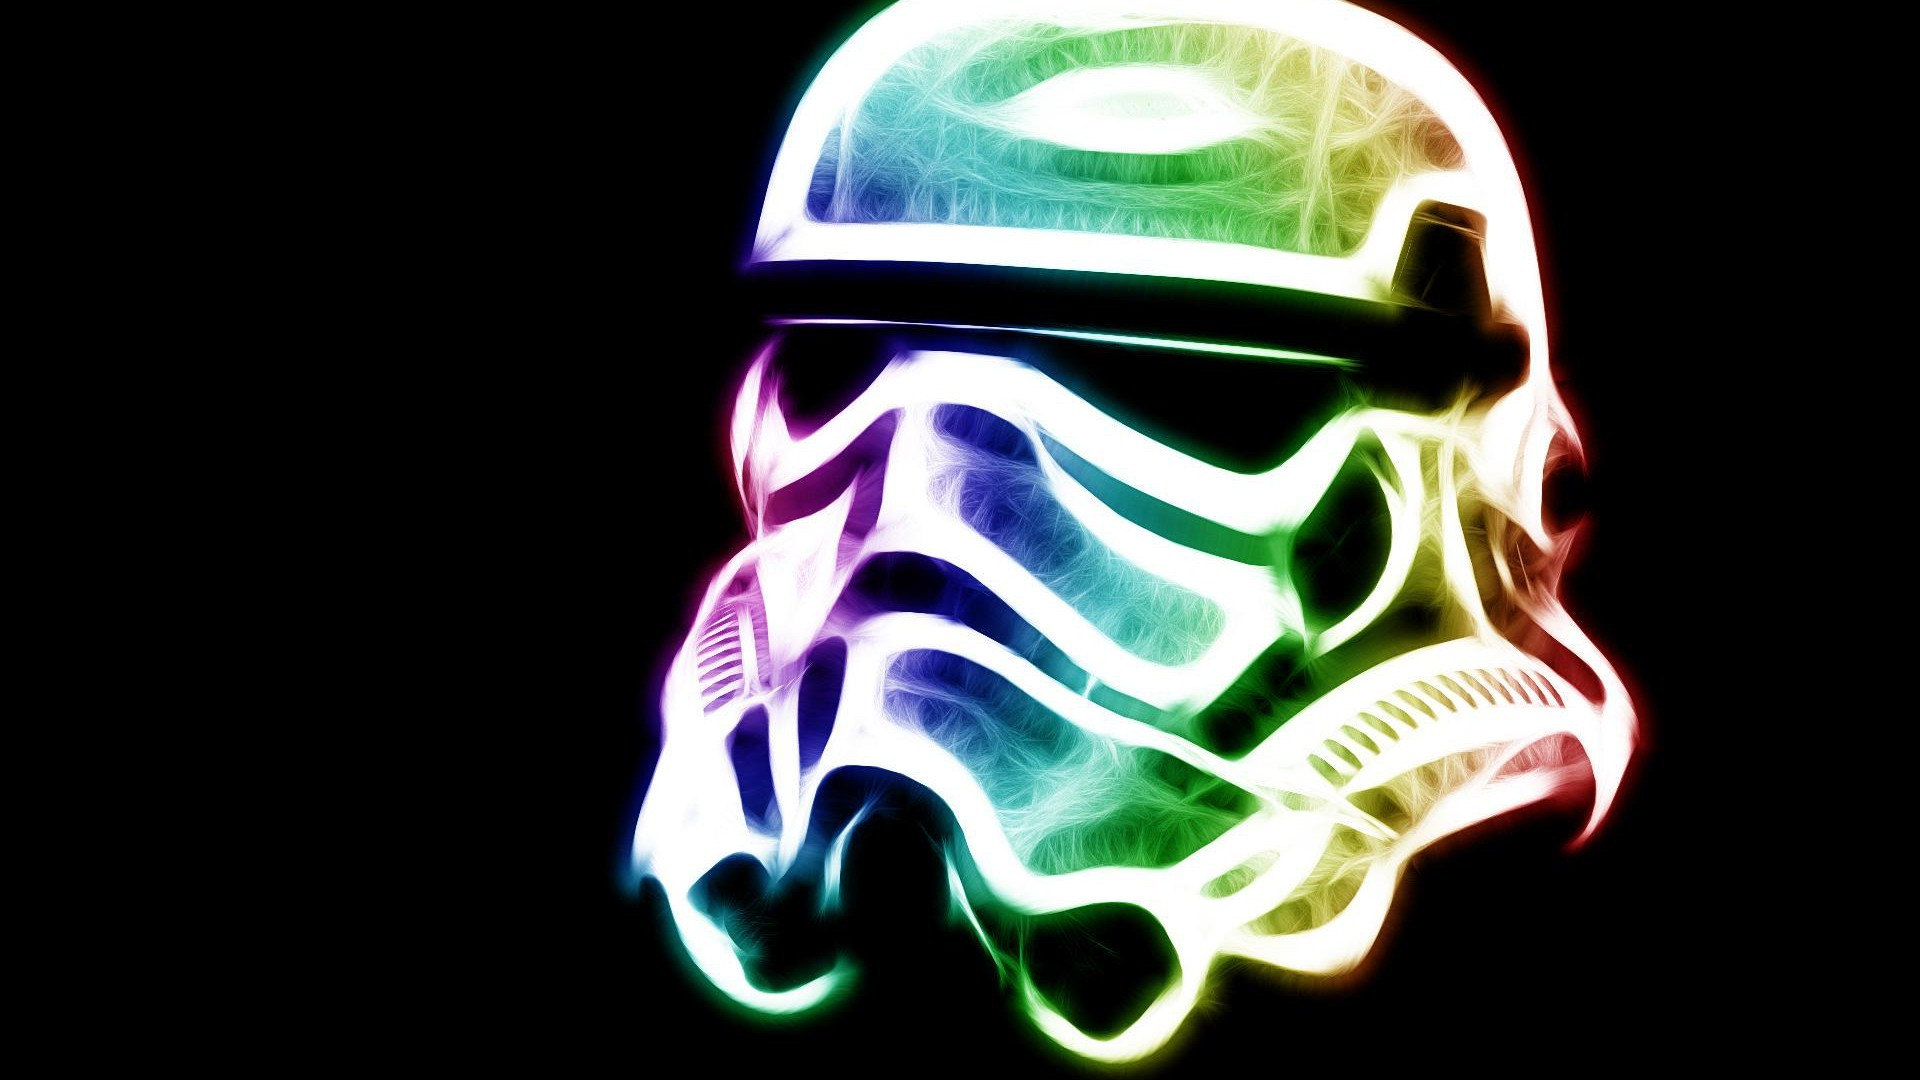 Star Wars Meme Wallpapers Pictures to Pin on Pinterest PinsDaddy